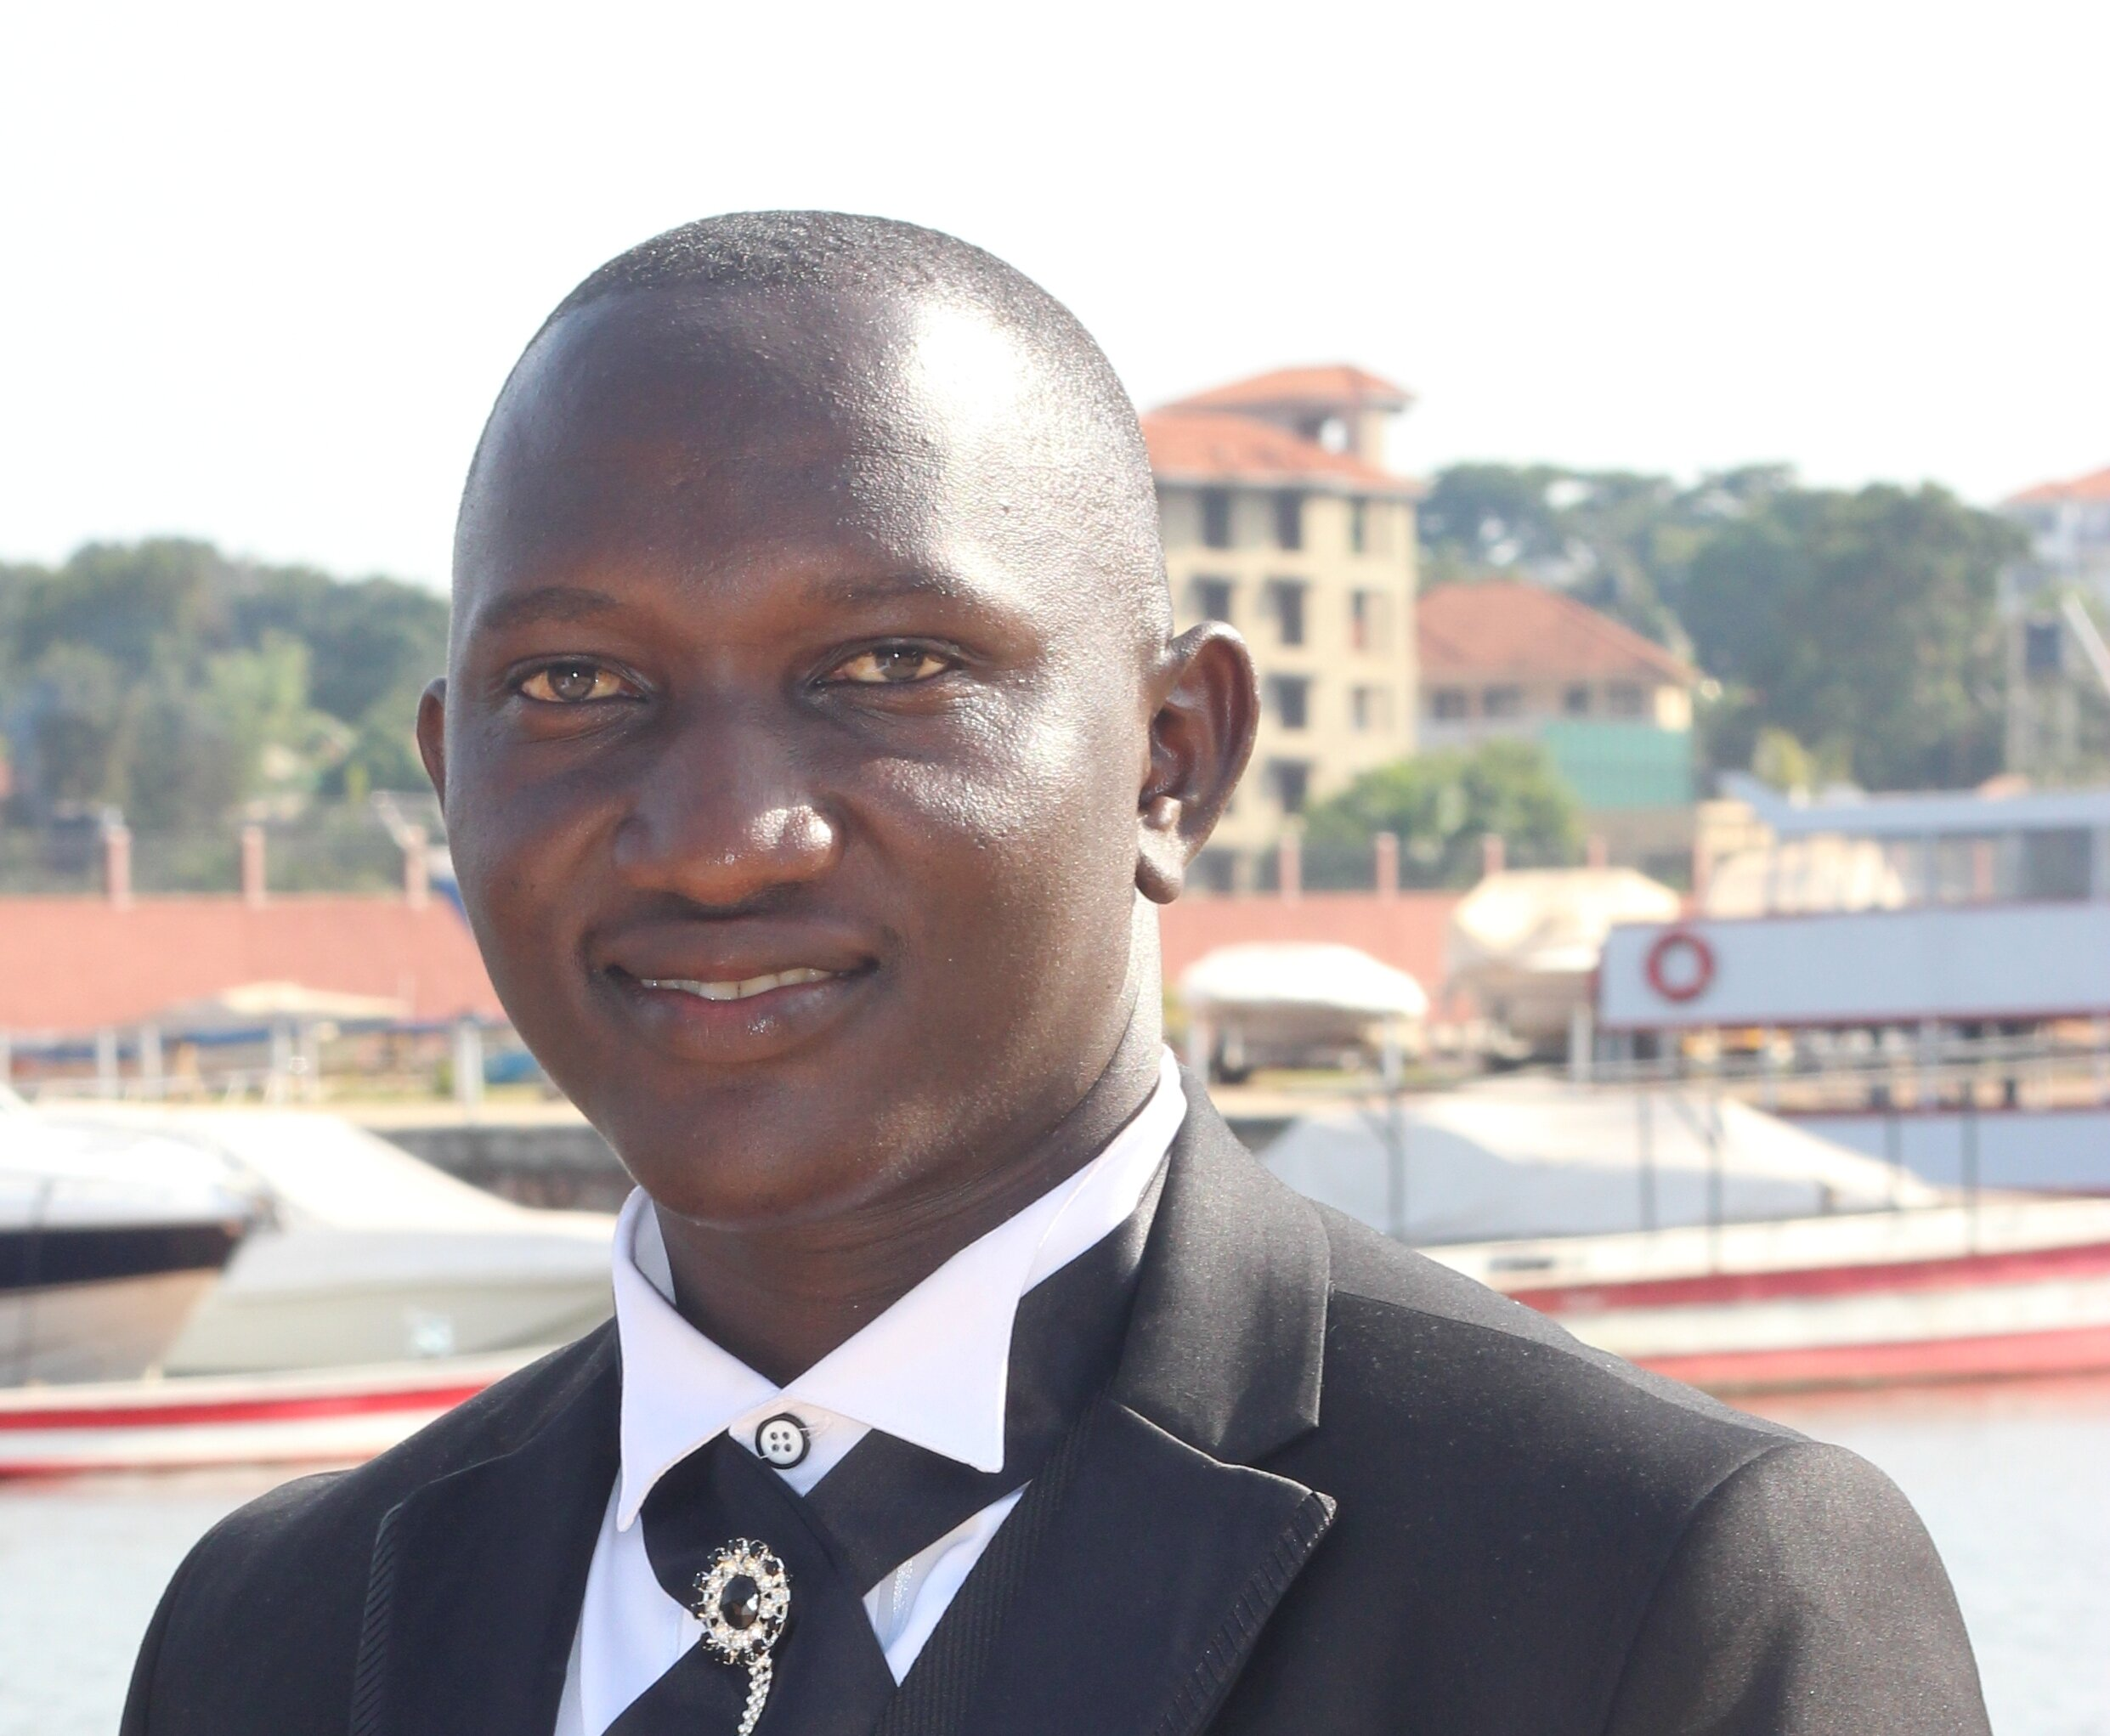 Rogers Raymond Muduku  Rogers Muduku is my name, currently serving as the Country Director for Maple Microdevelopment Uganda. I joined Maple as an Intern right after completing my Bachelors Degree in Business Administration with a Major in Accounts at Makerere University (MUBS) in 2010.